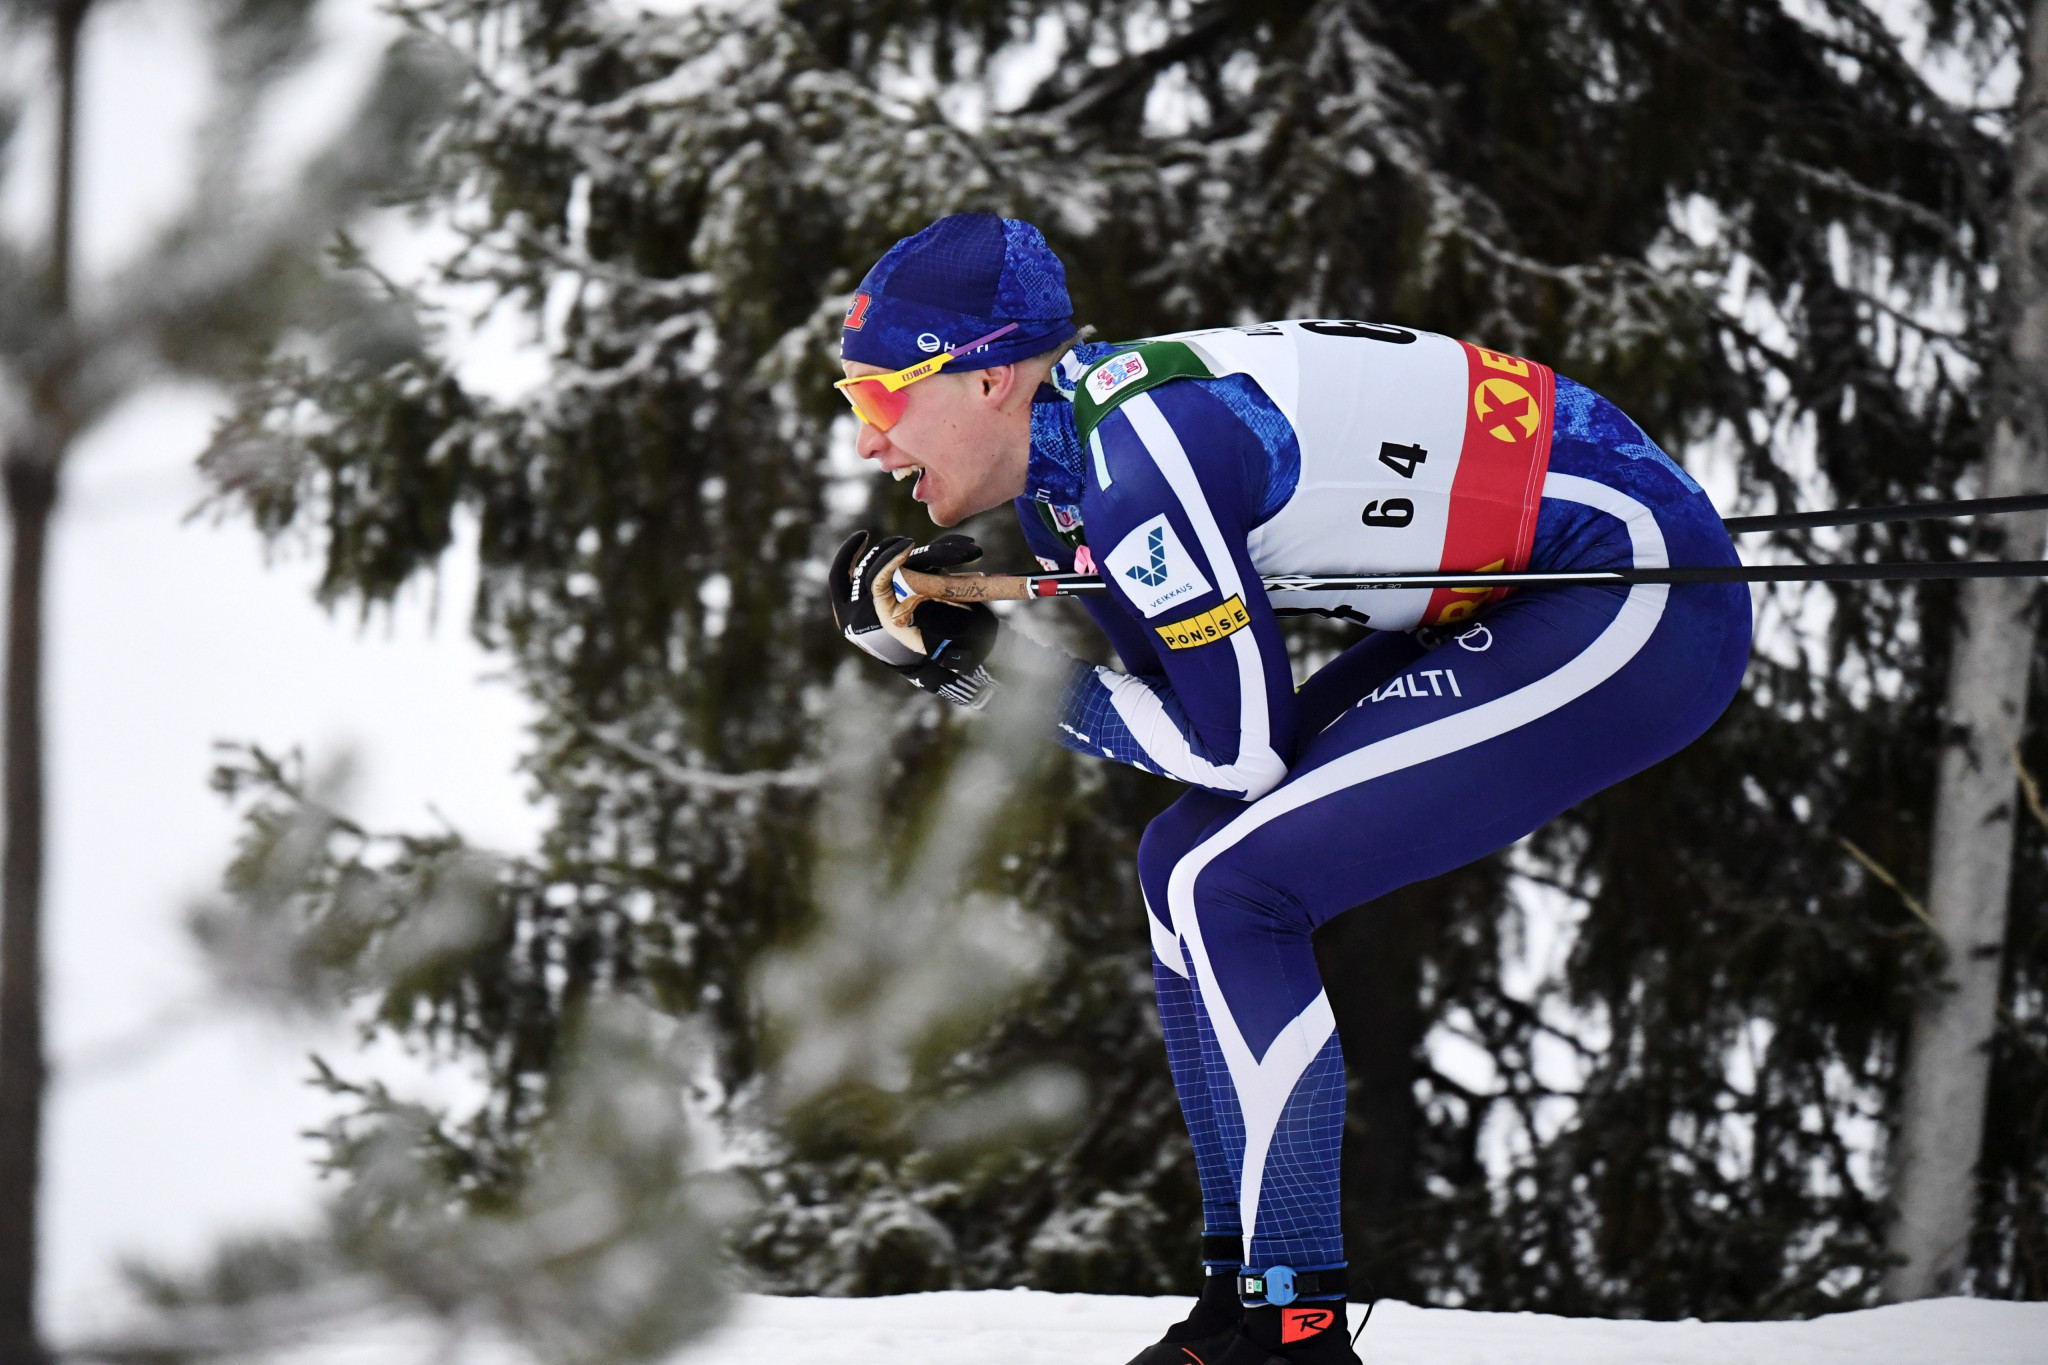 Finland's Iivo Niskanen won the men's event in Estonia ©Getty Images